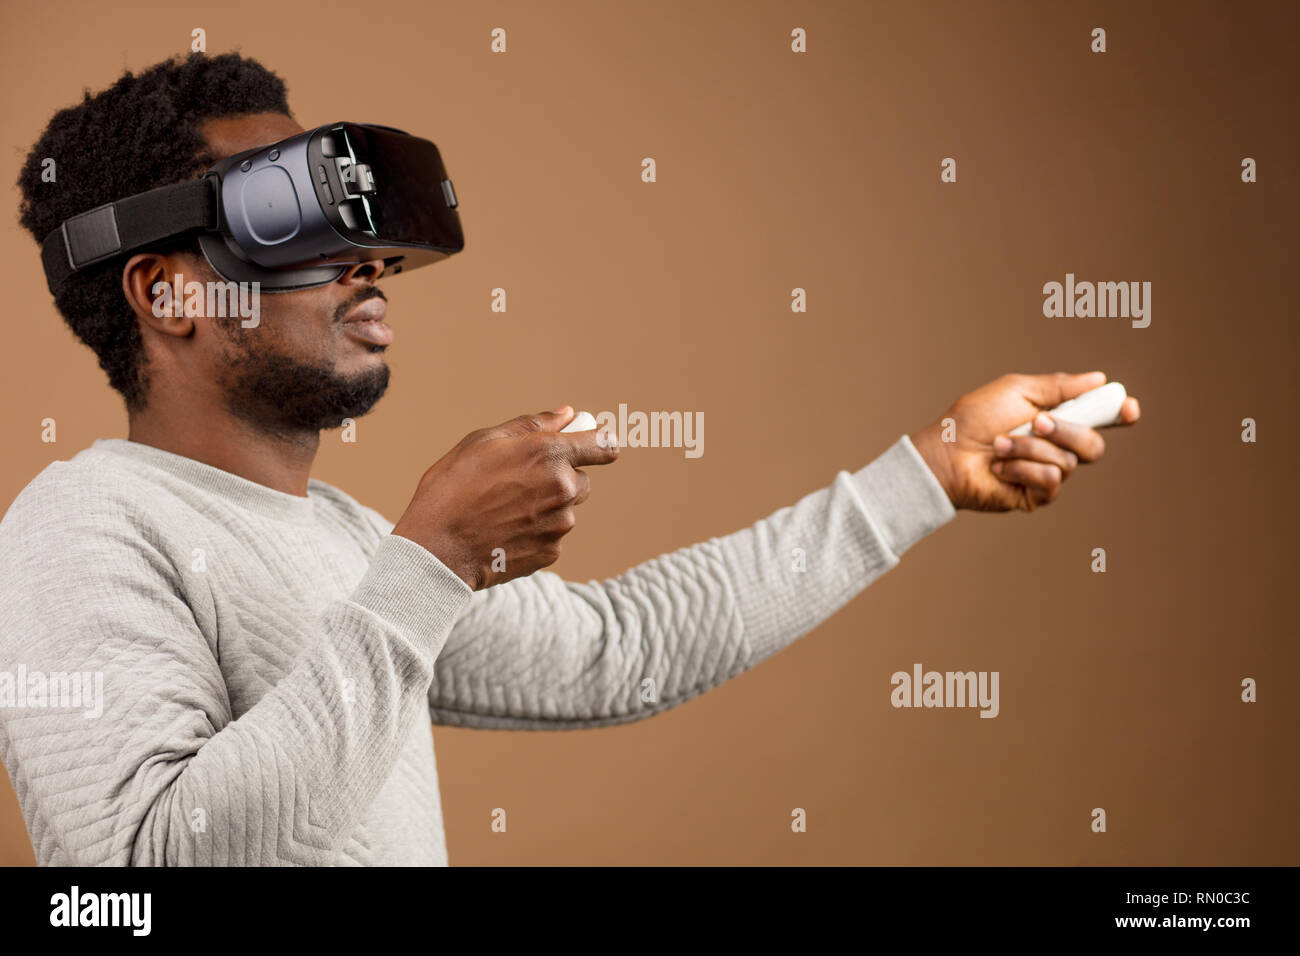 Dark-skinned millennial tourist in casual clothing wearing glasses with head-mounted display for smart phone, operating with controllers in hands, doi - Stock Image